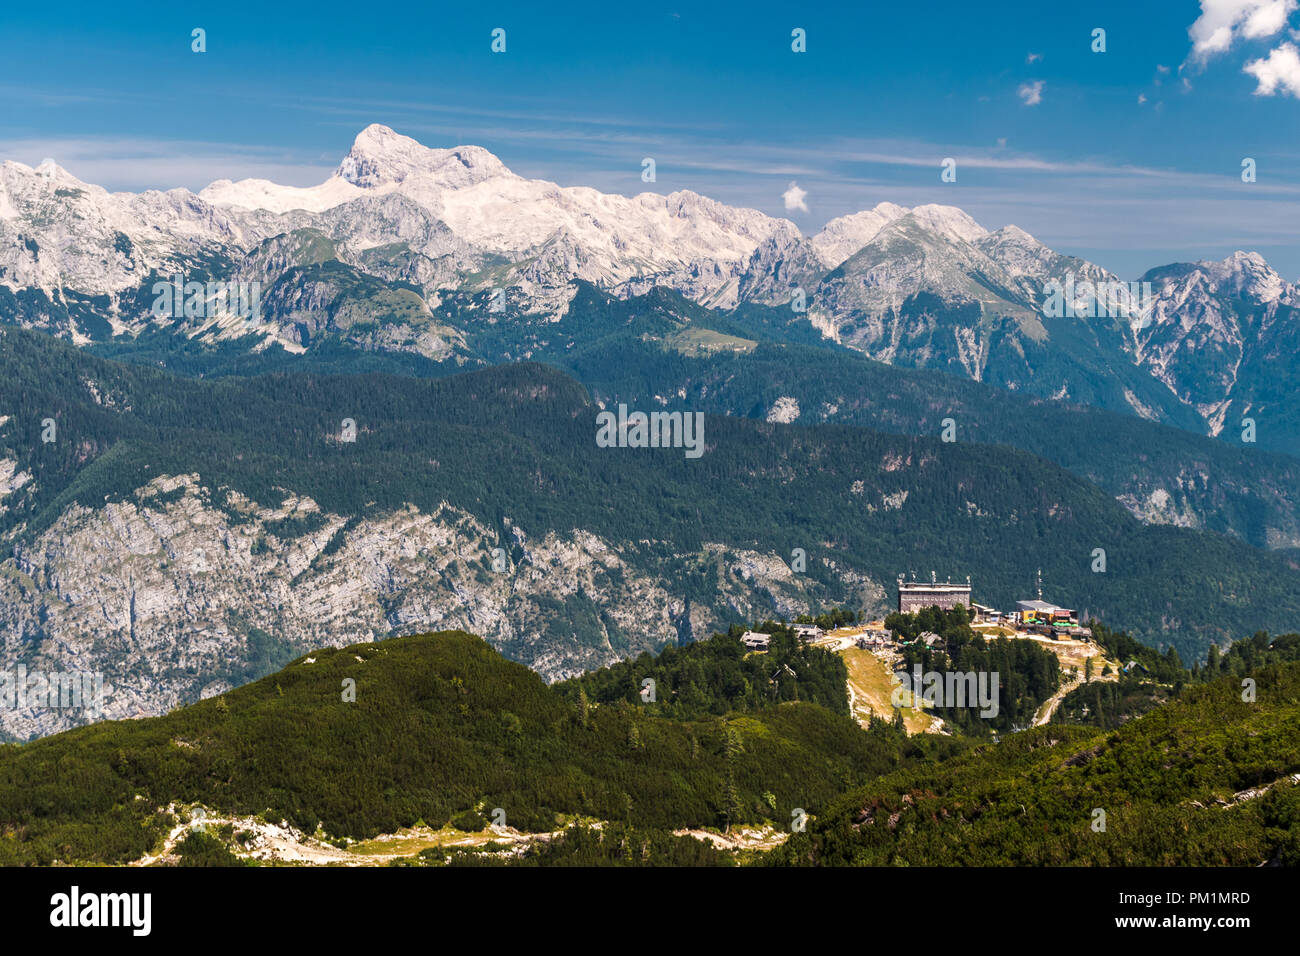 The mount Triglav, the highest peak in Slovenia, as seen from the Vogel touristic area - Stock Image